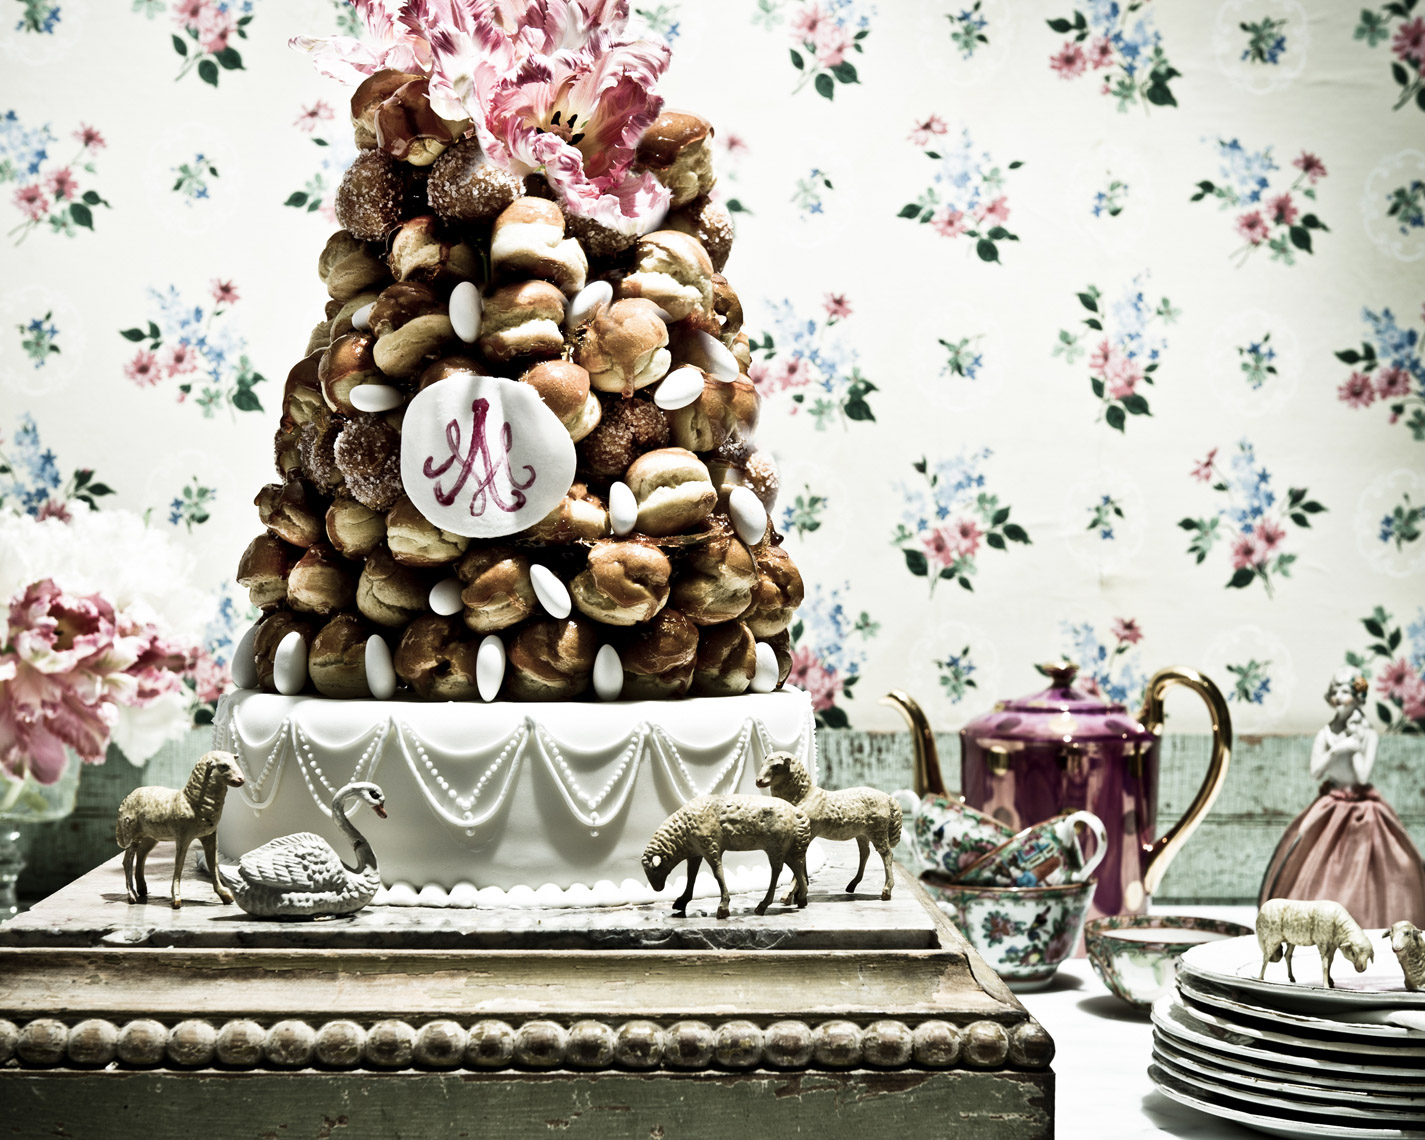 Robyn Valarik San Francisco  Food & Drink Stylist - French, antique, croquembouche, pastry-shop, Marie-Antionette, porcelain, figurines, sugar, choux, caramel, celebration, party, food-photography